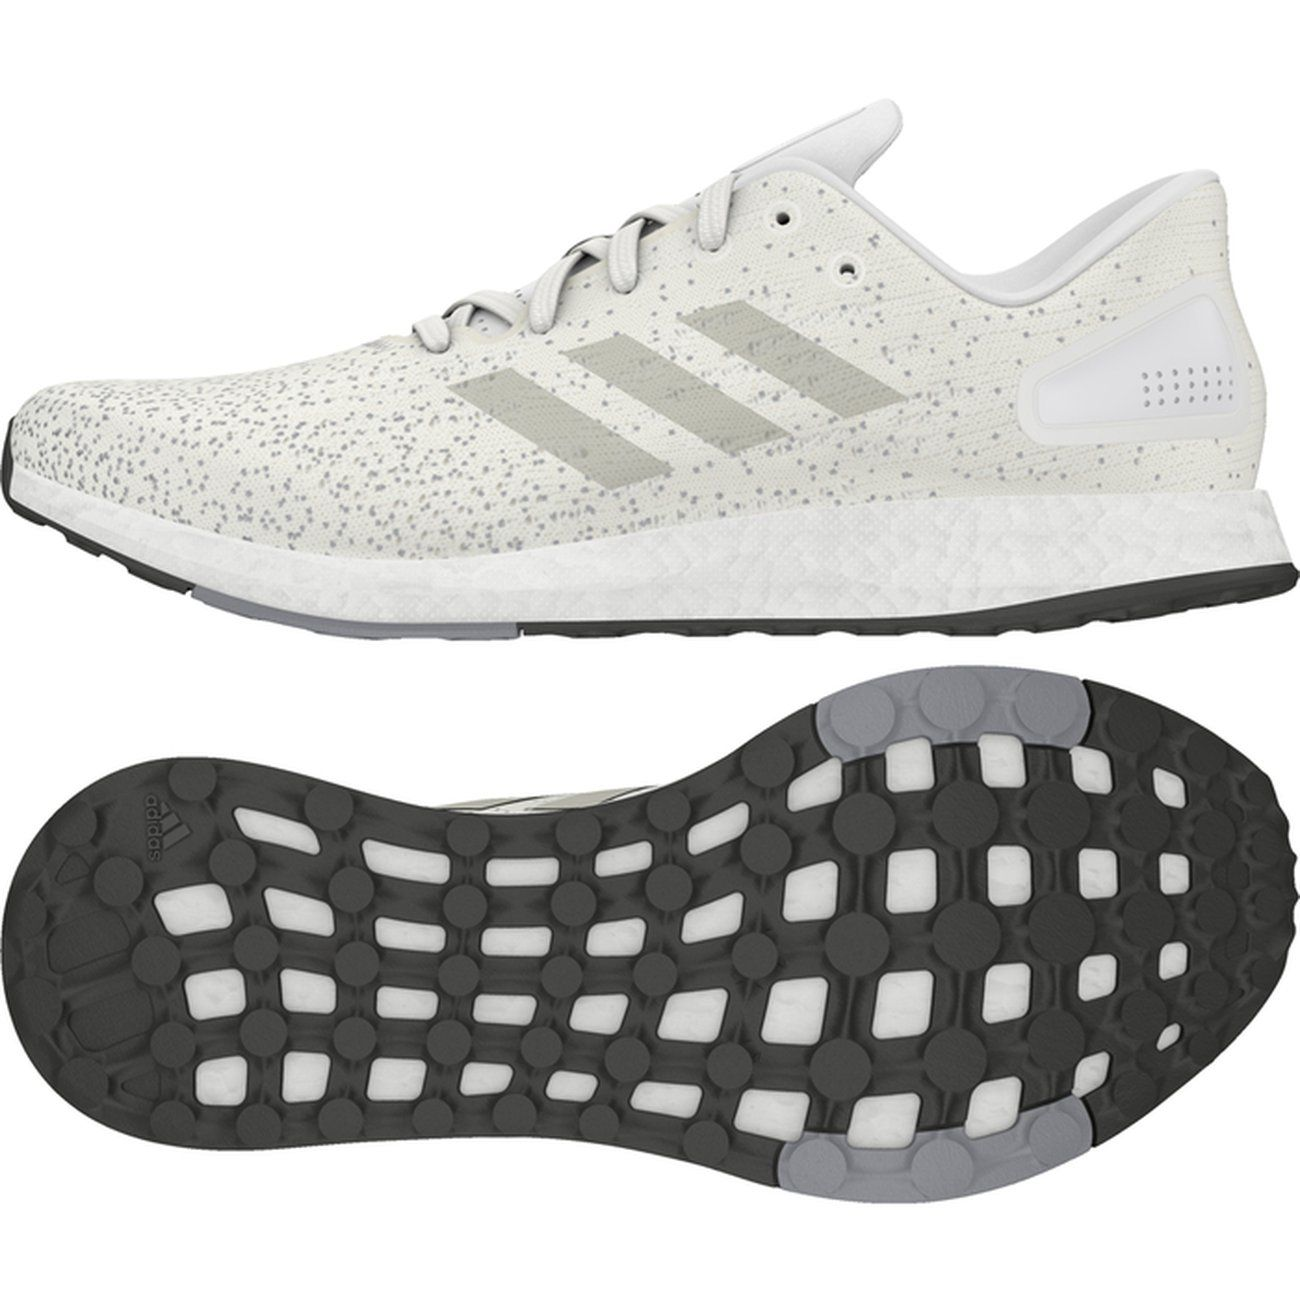 save off 3ea91 12b19 CHAUSSURES BASSES running homme ADIDAS PureBOOST DPR M, BLANC ...